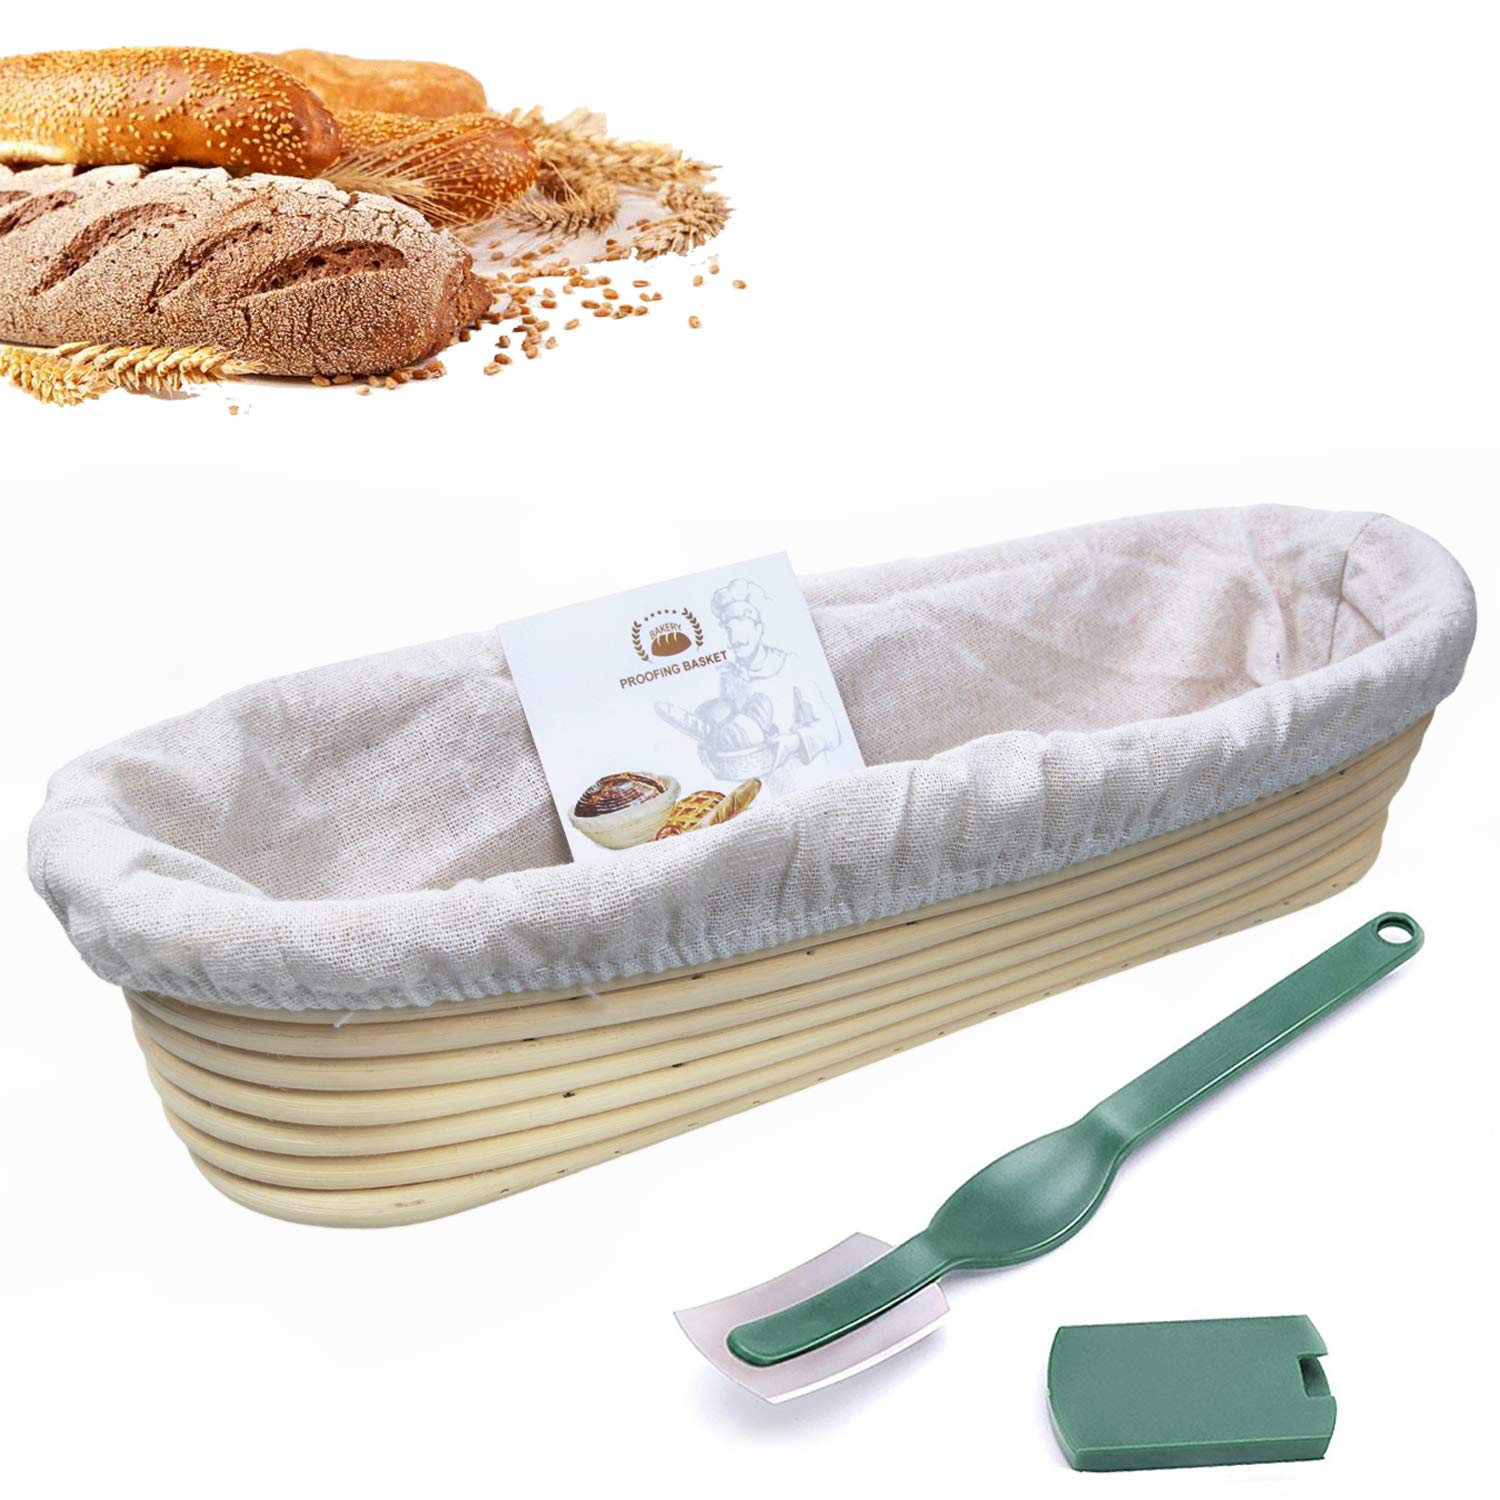 Oval Proofing Basket 10 Inch,WERTIOO Banneton Bread Proofing Basket + Dough Scraper + Linen Liner Cloth for Professional & Home Bakers Sourdough Recipe